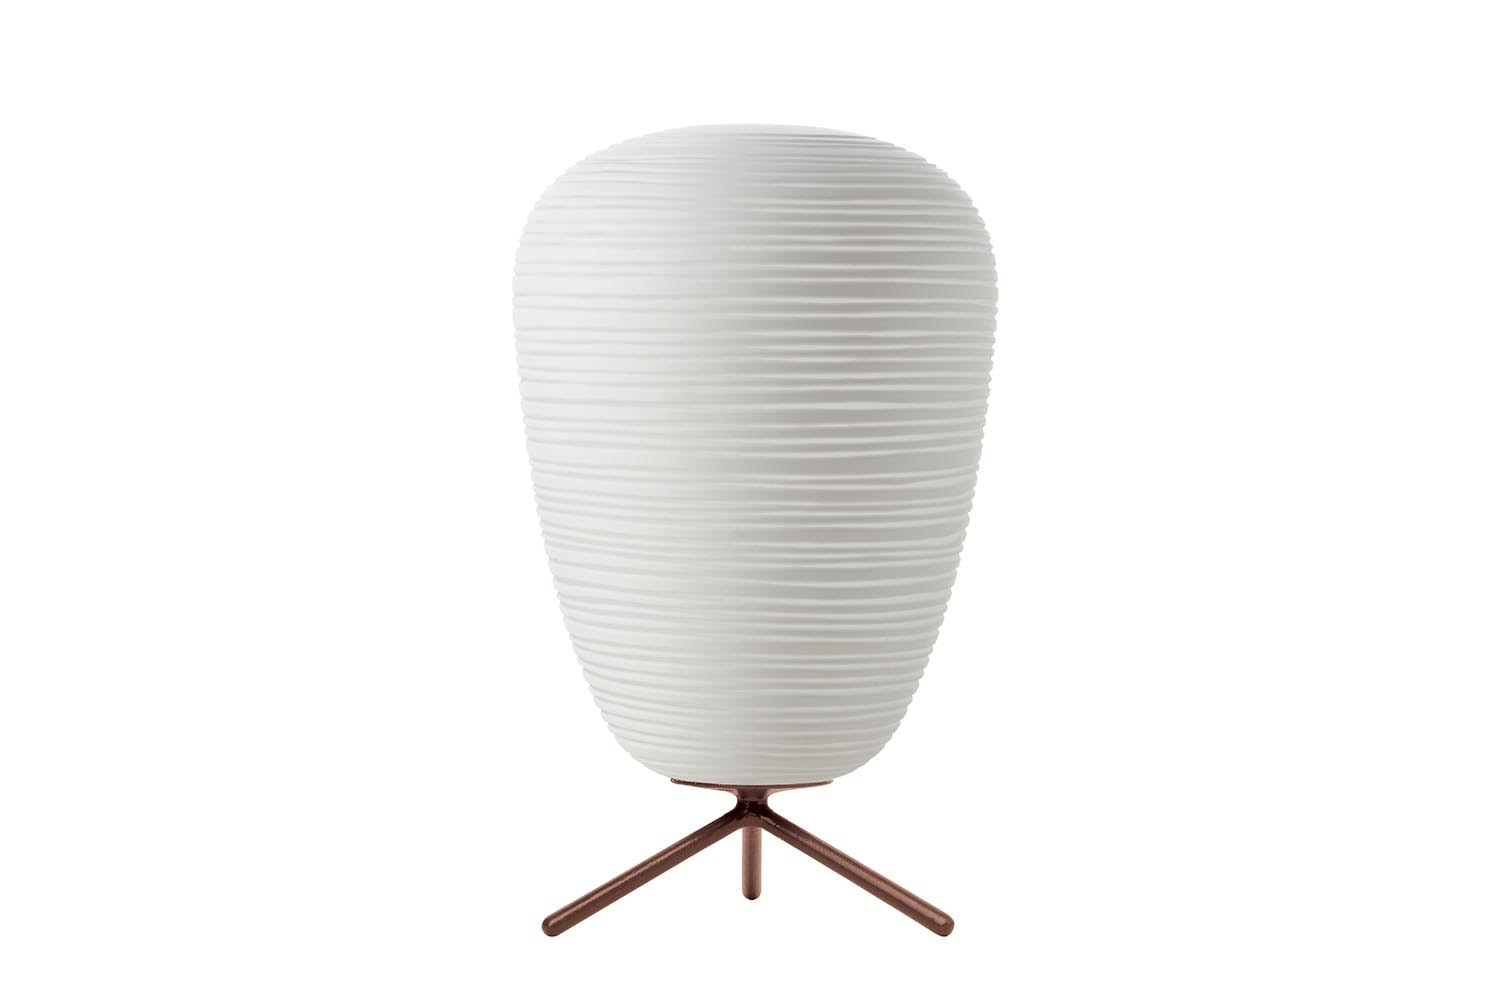 Rituals 1 Table Lamp by Ludovica & Roberto Palomba for Foscarini